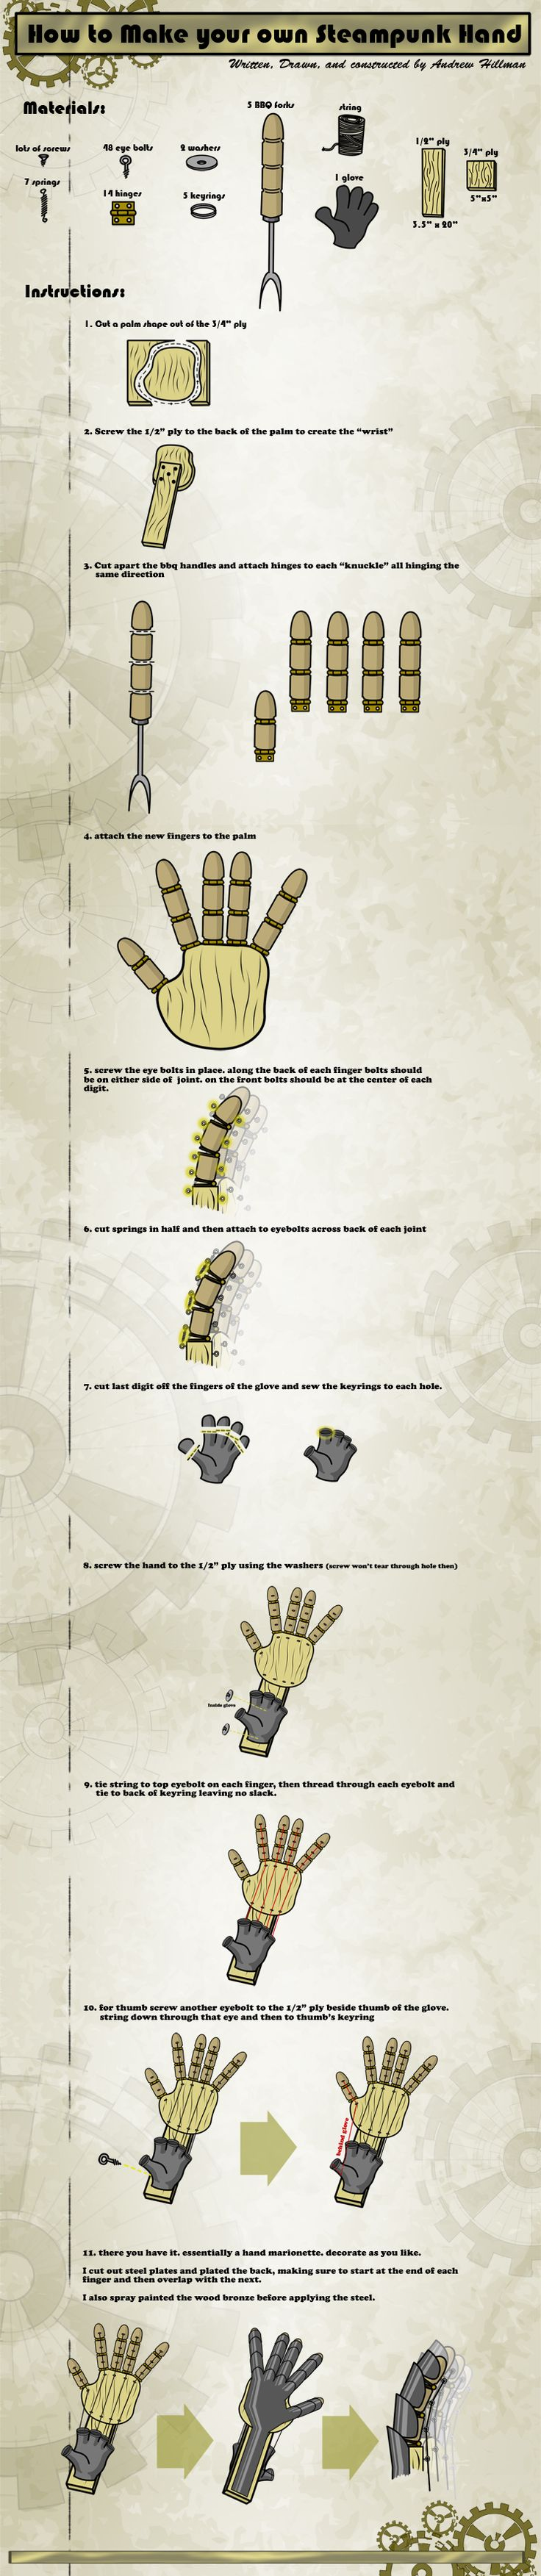 Steampunk Hand in Walkthrough: Doesn't look too complex, not sure what it would be used for, but interesting.